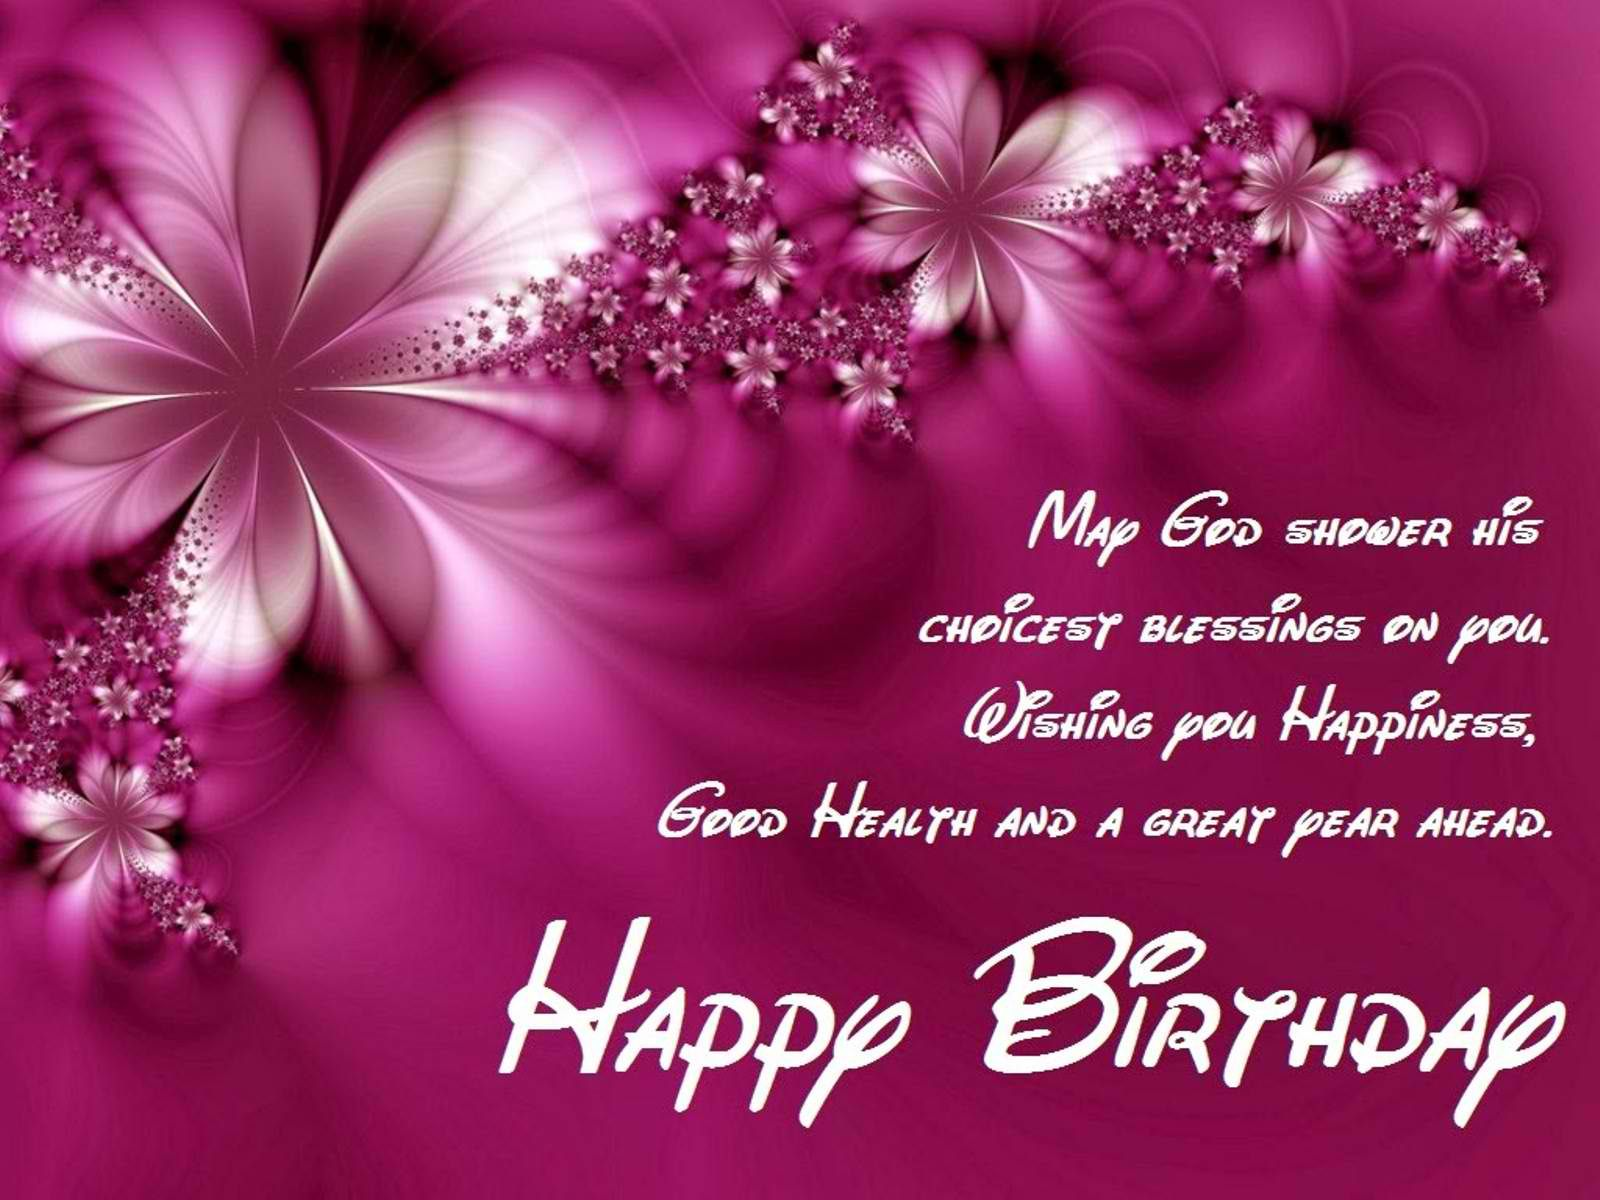 Happy Birthday Wishes Artinya ~ Lord jesus bless you birthday wishes quotes and messages with